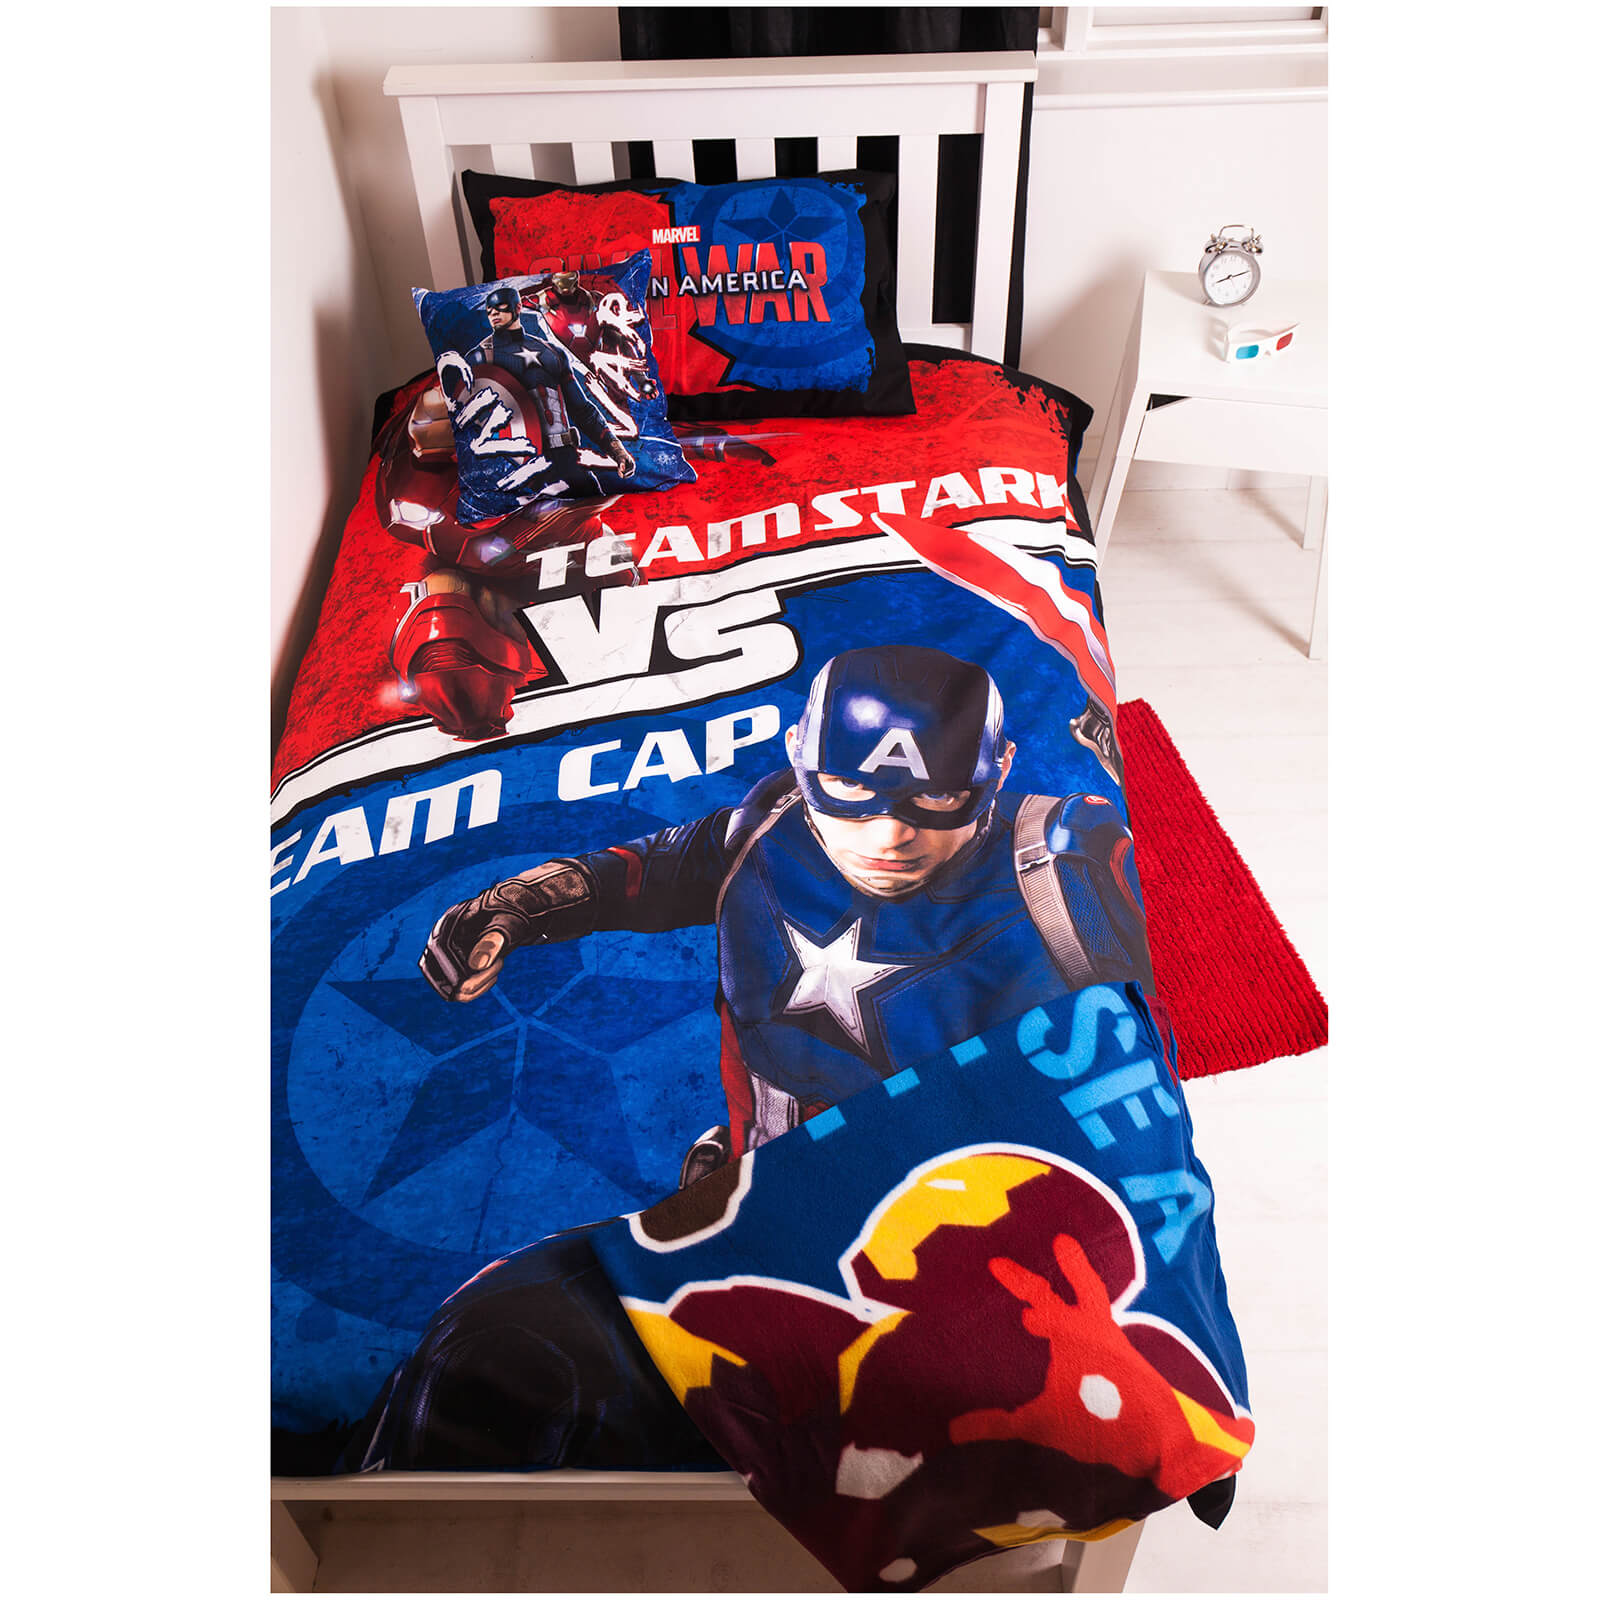 Captain America: Civil War Bed Bundle - Single